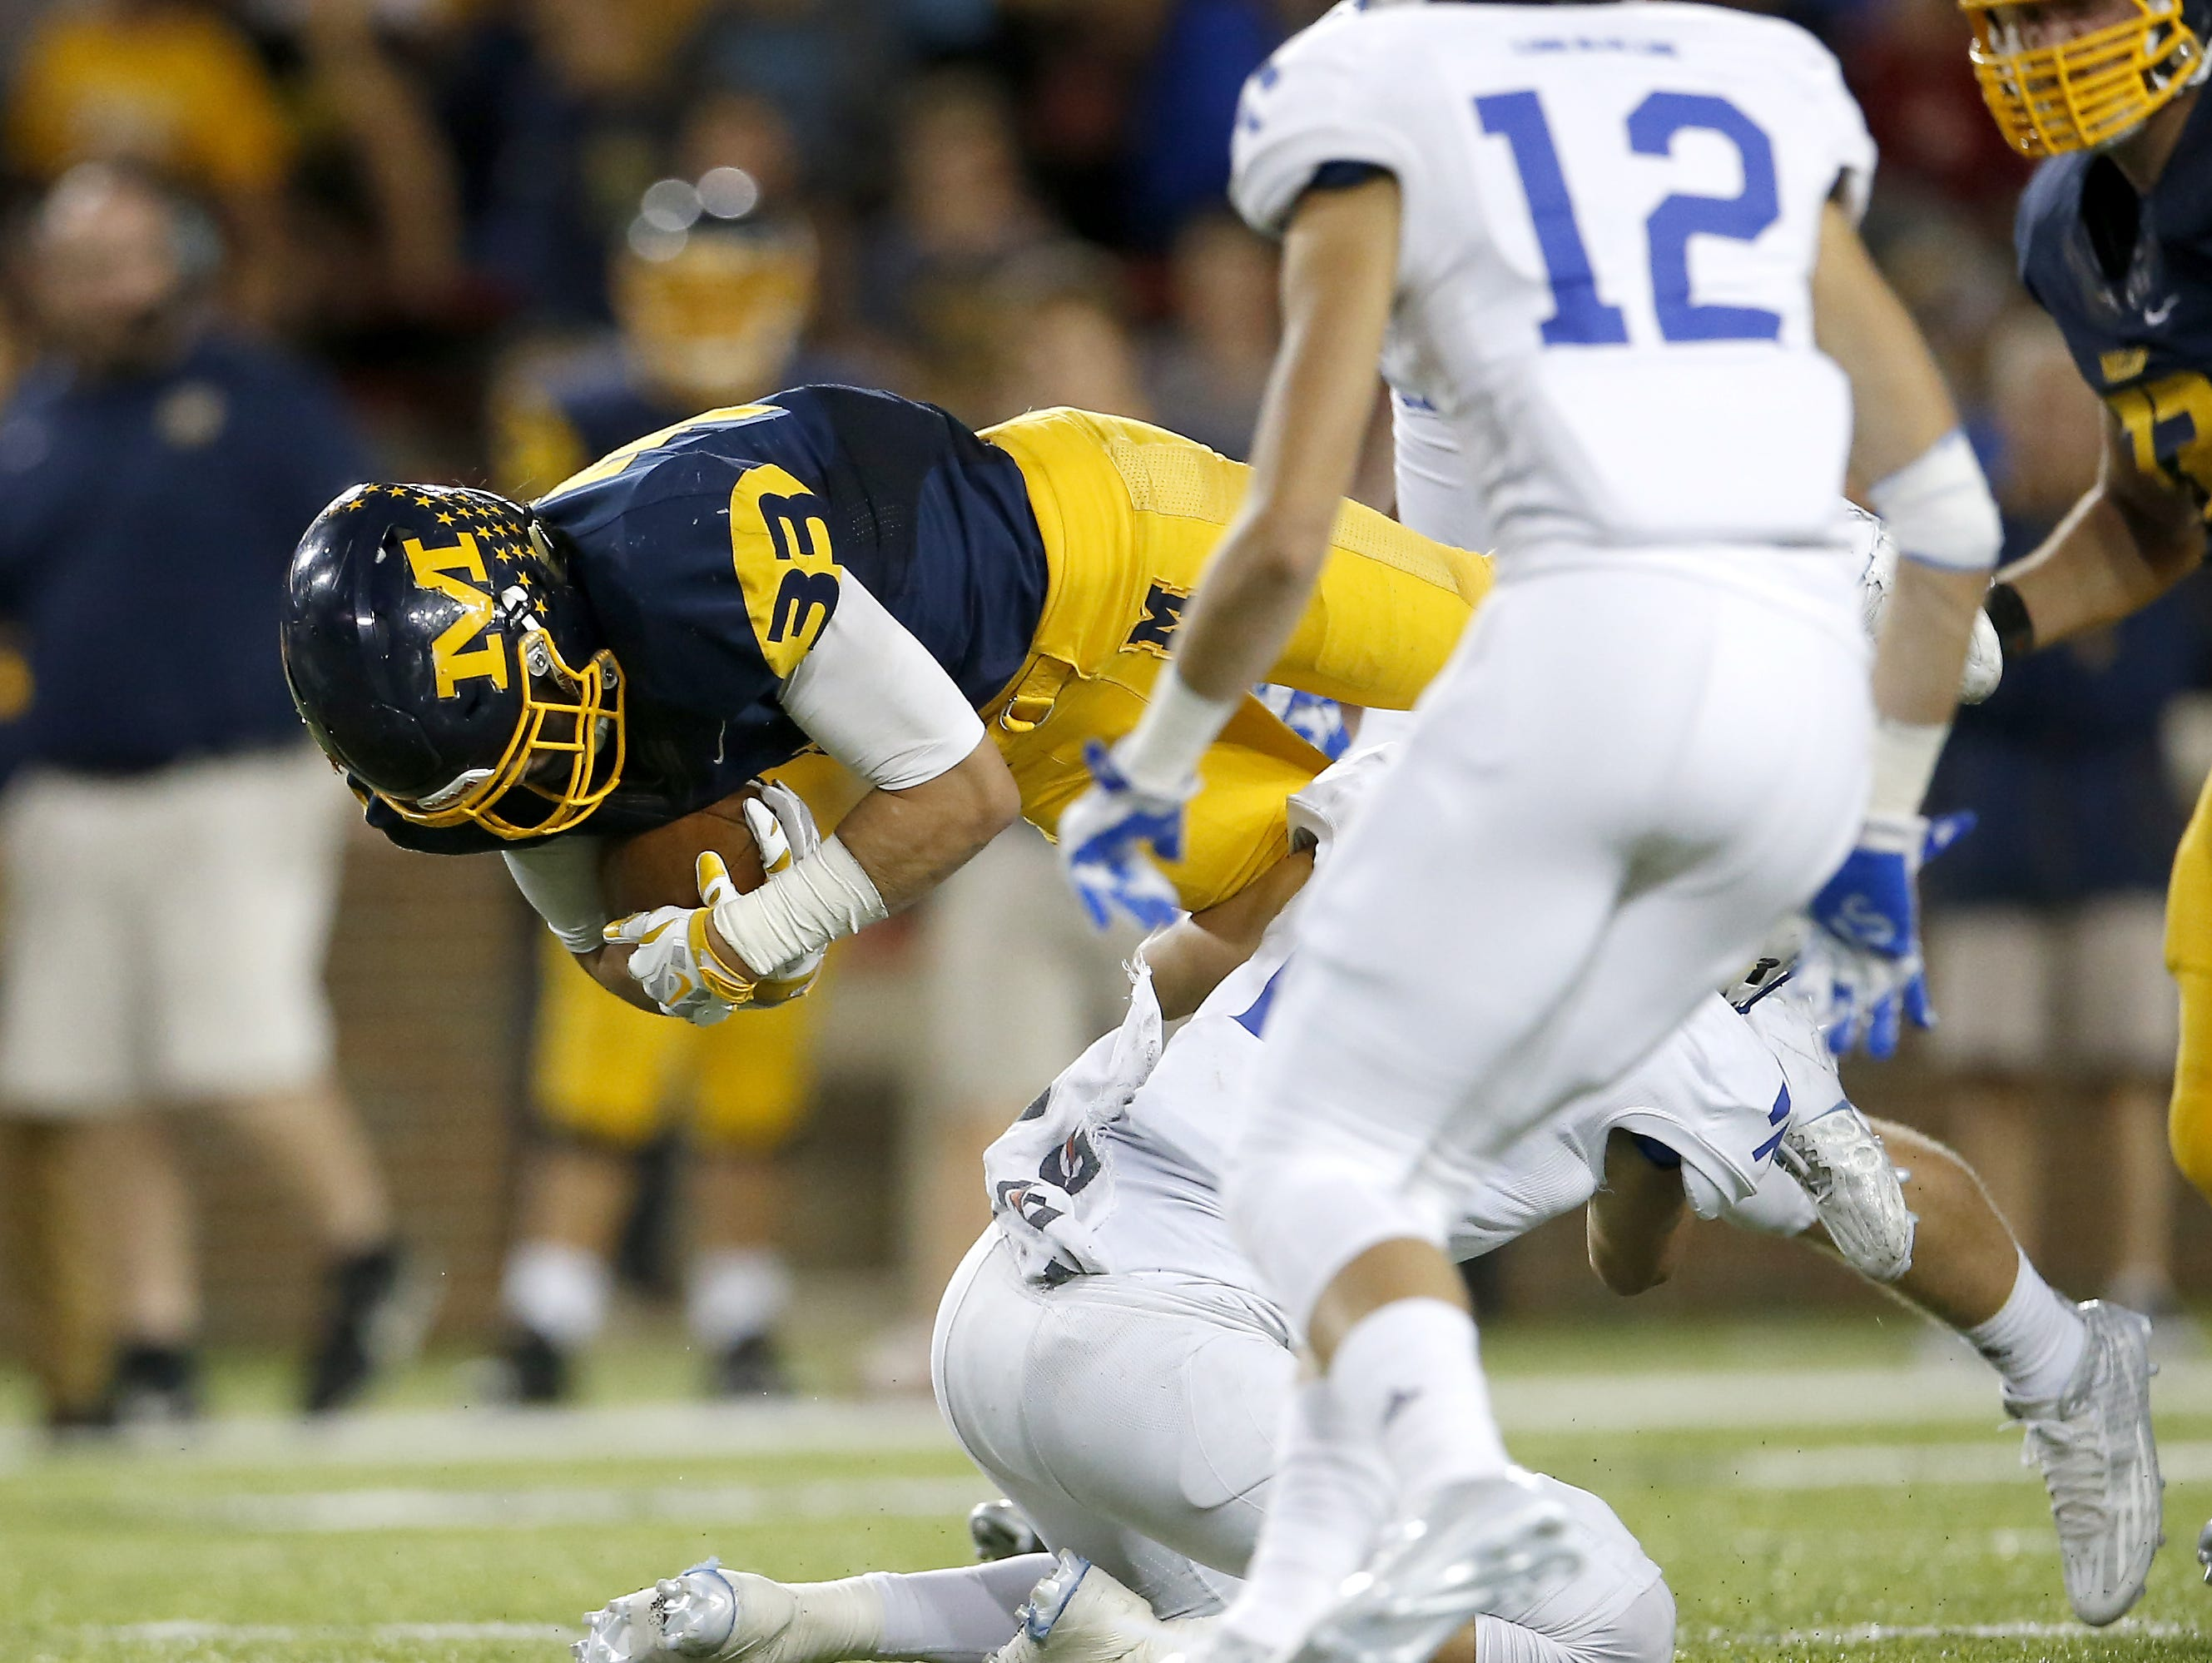 Moeller running back Hunter Hughes leaps for extra yards on a run in the second quarter during the high school football game between the Moeller Crusaders and St. Xavier Bombers, Friday, Sept. 25, 2015, at Nippert Stadium in Cincinnati, Ohio.